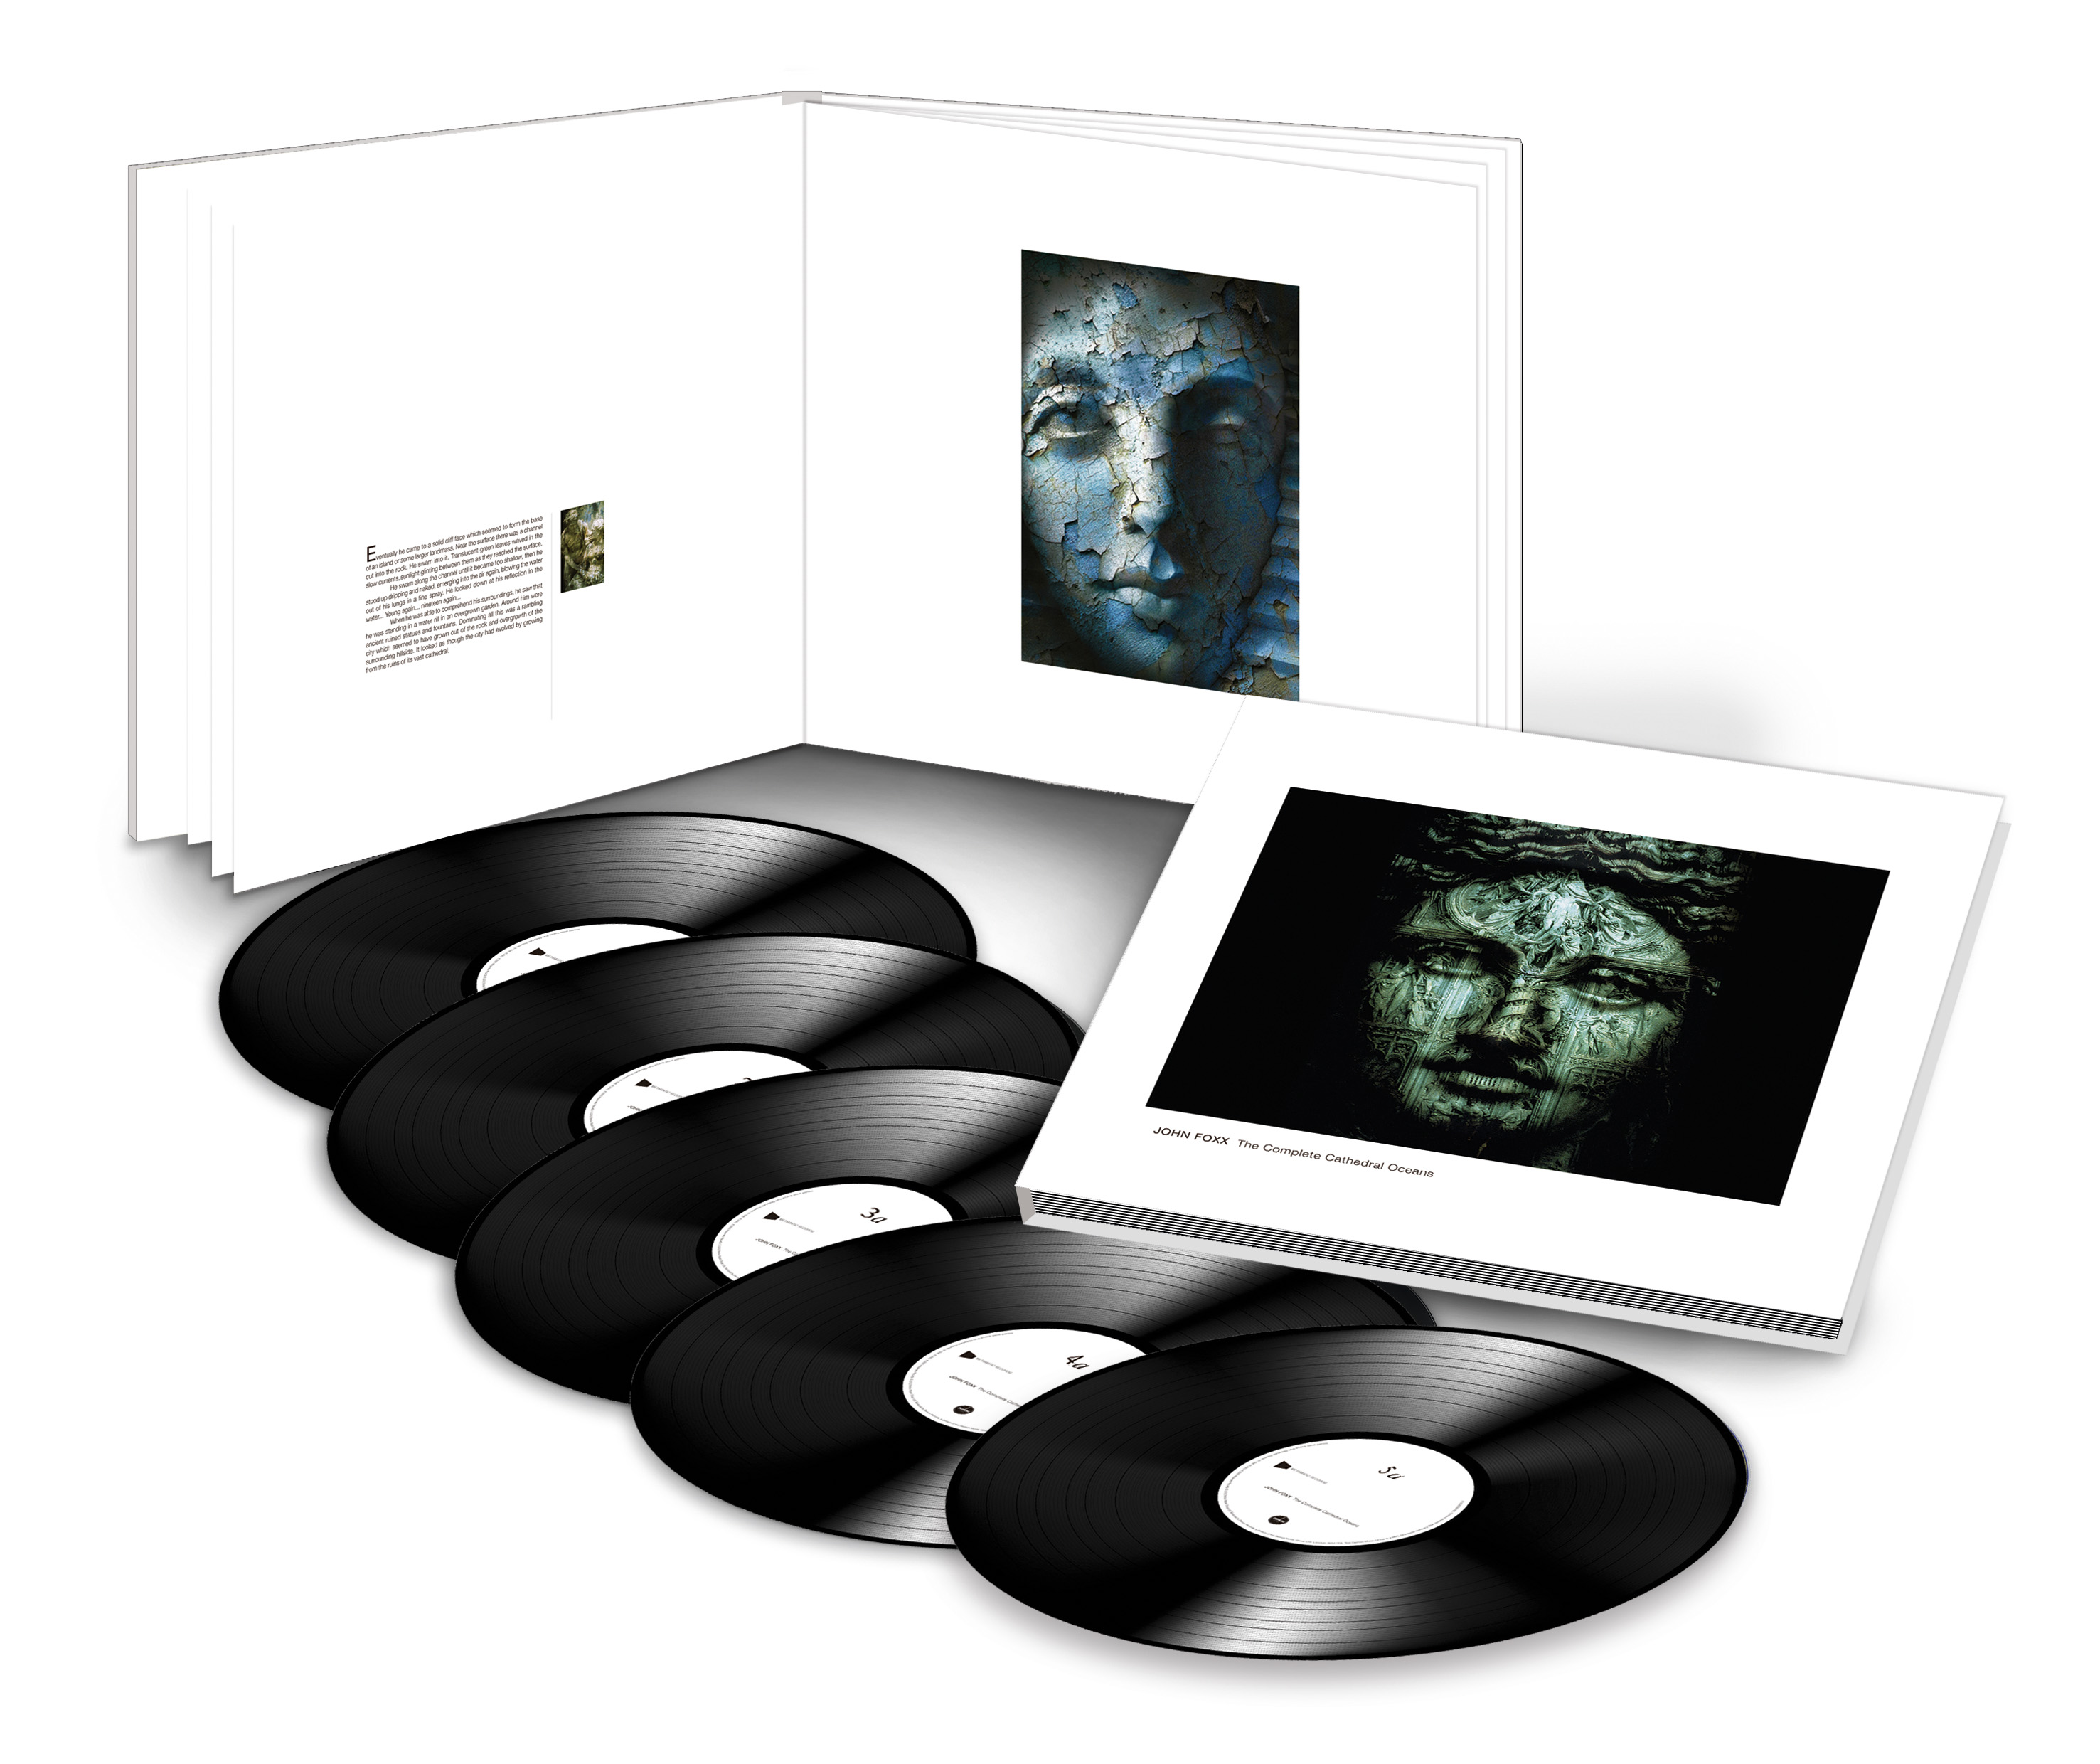 John Foxx / The Complete Cathedral Oceans / deluxe 5LP book set